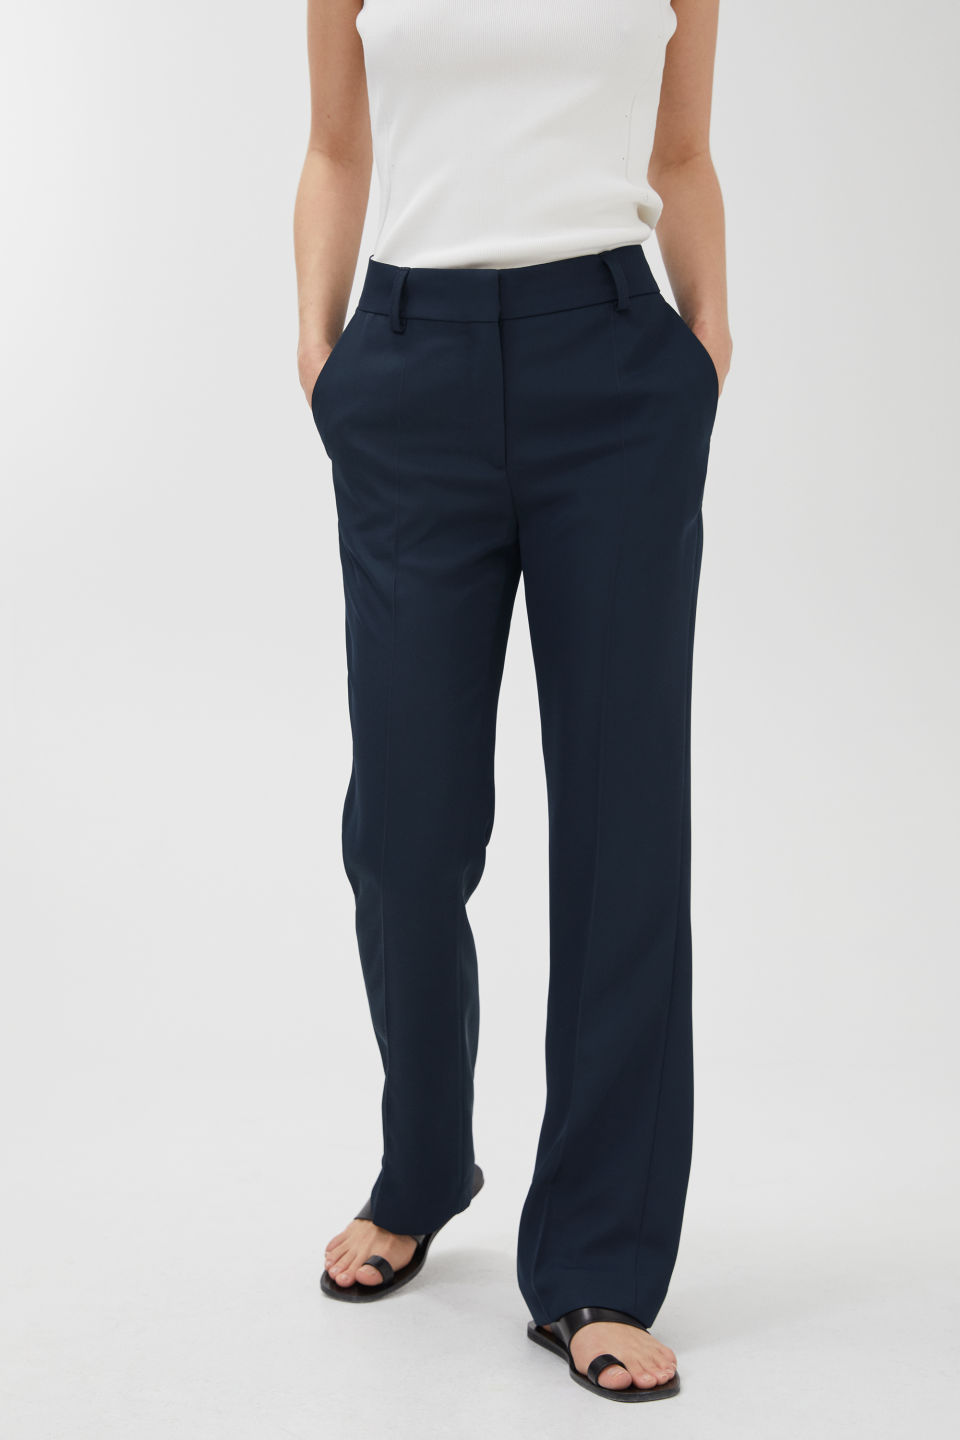 Detailed image of Arket no img-fluid twill trousers in blue